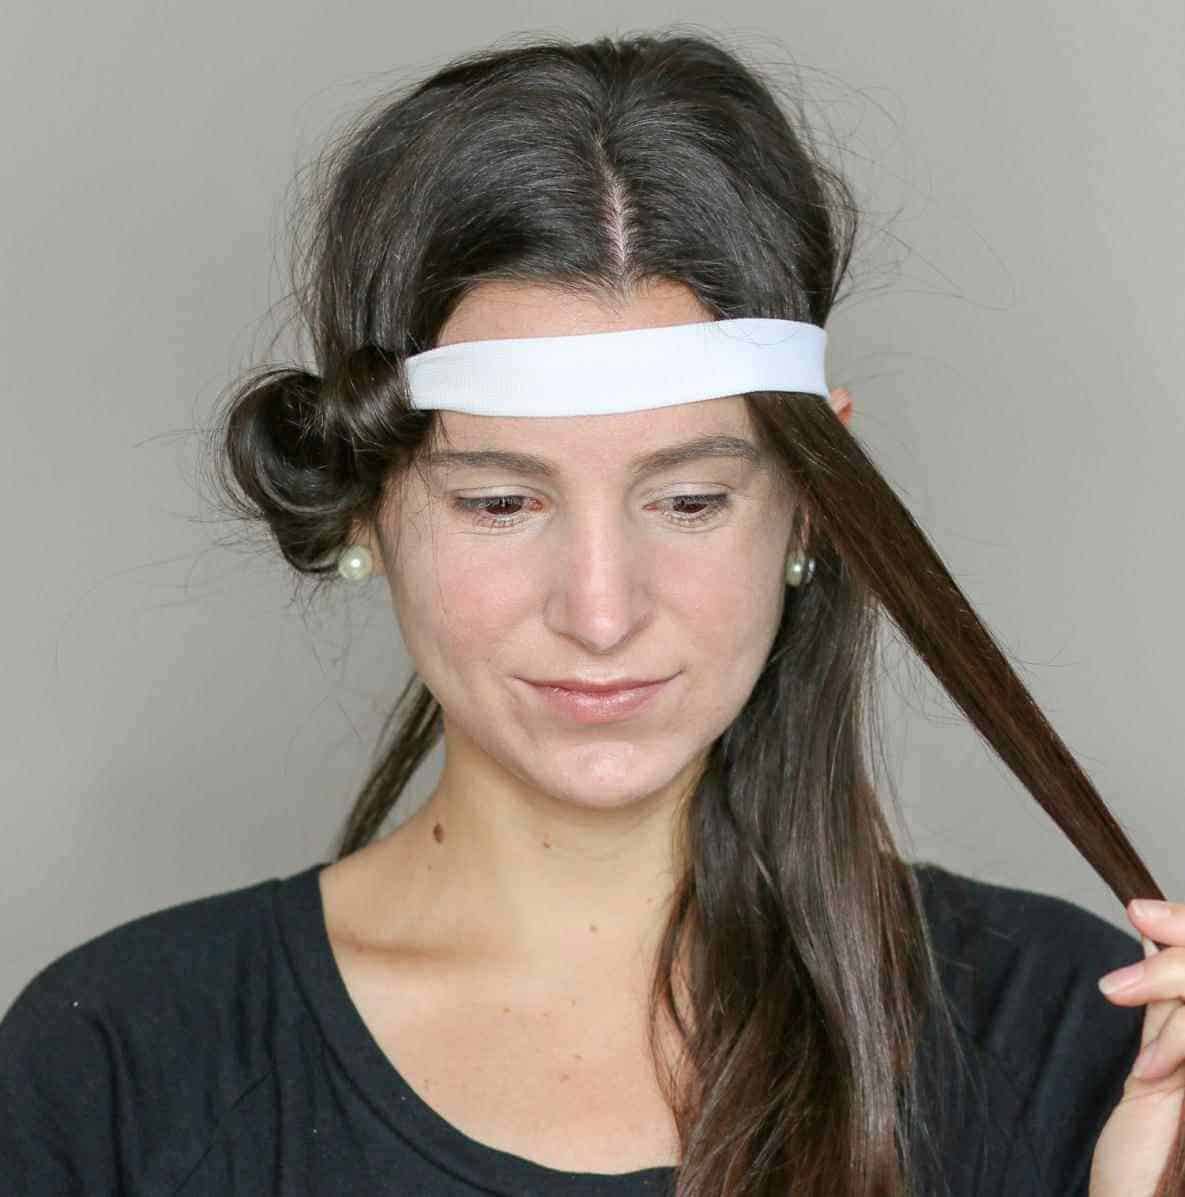 Diy headband curls